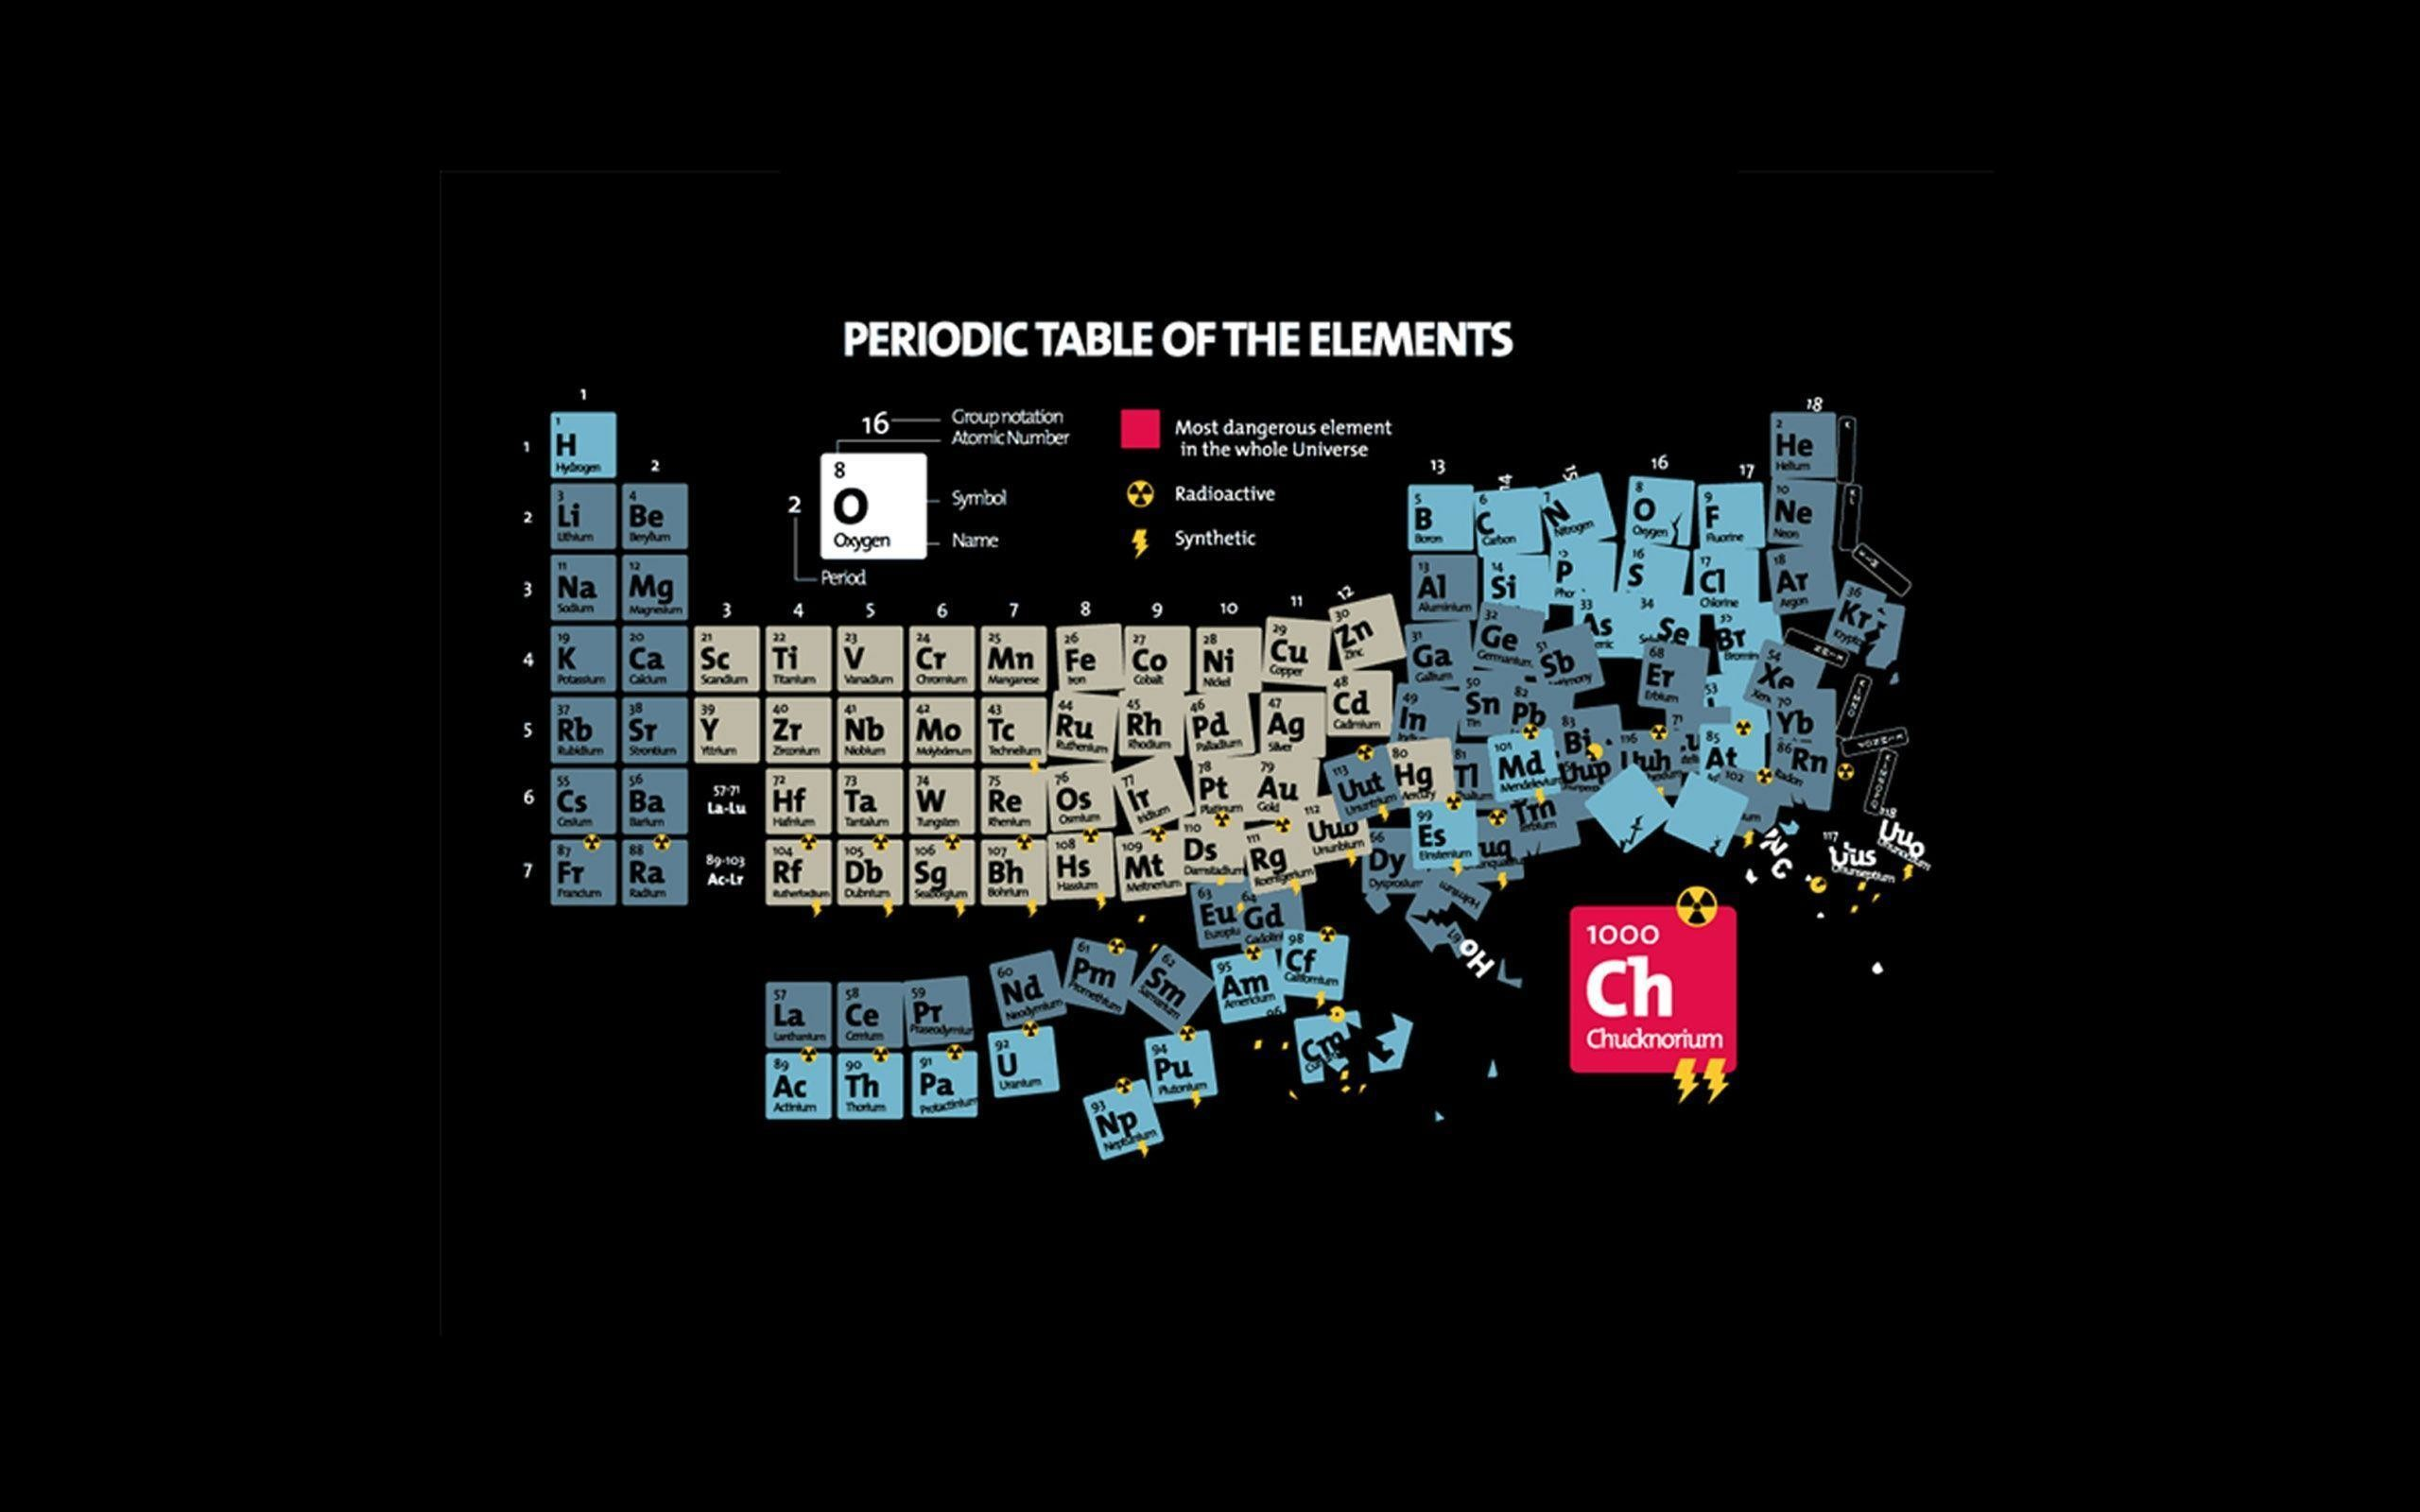 Cool elements on the periodic table images periodic table images cool periodic tables choice image periodic table images cool elements on the periodic table images periodic gamestrikefo Images